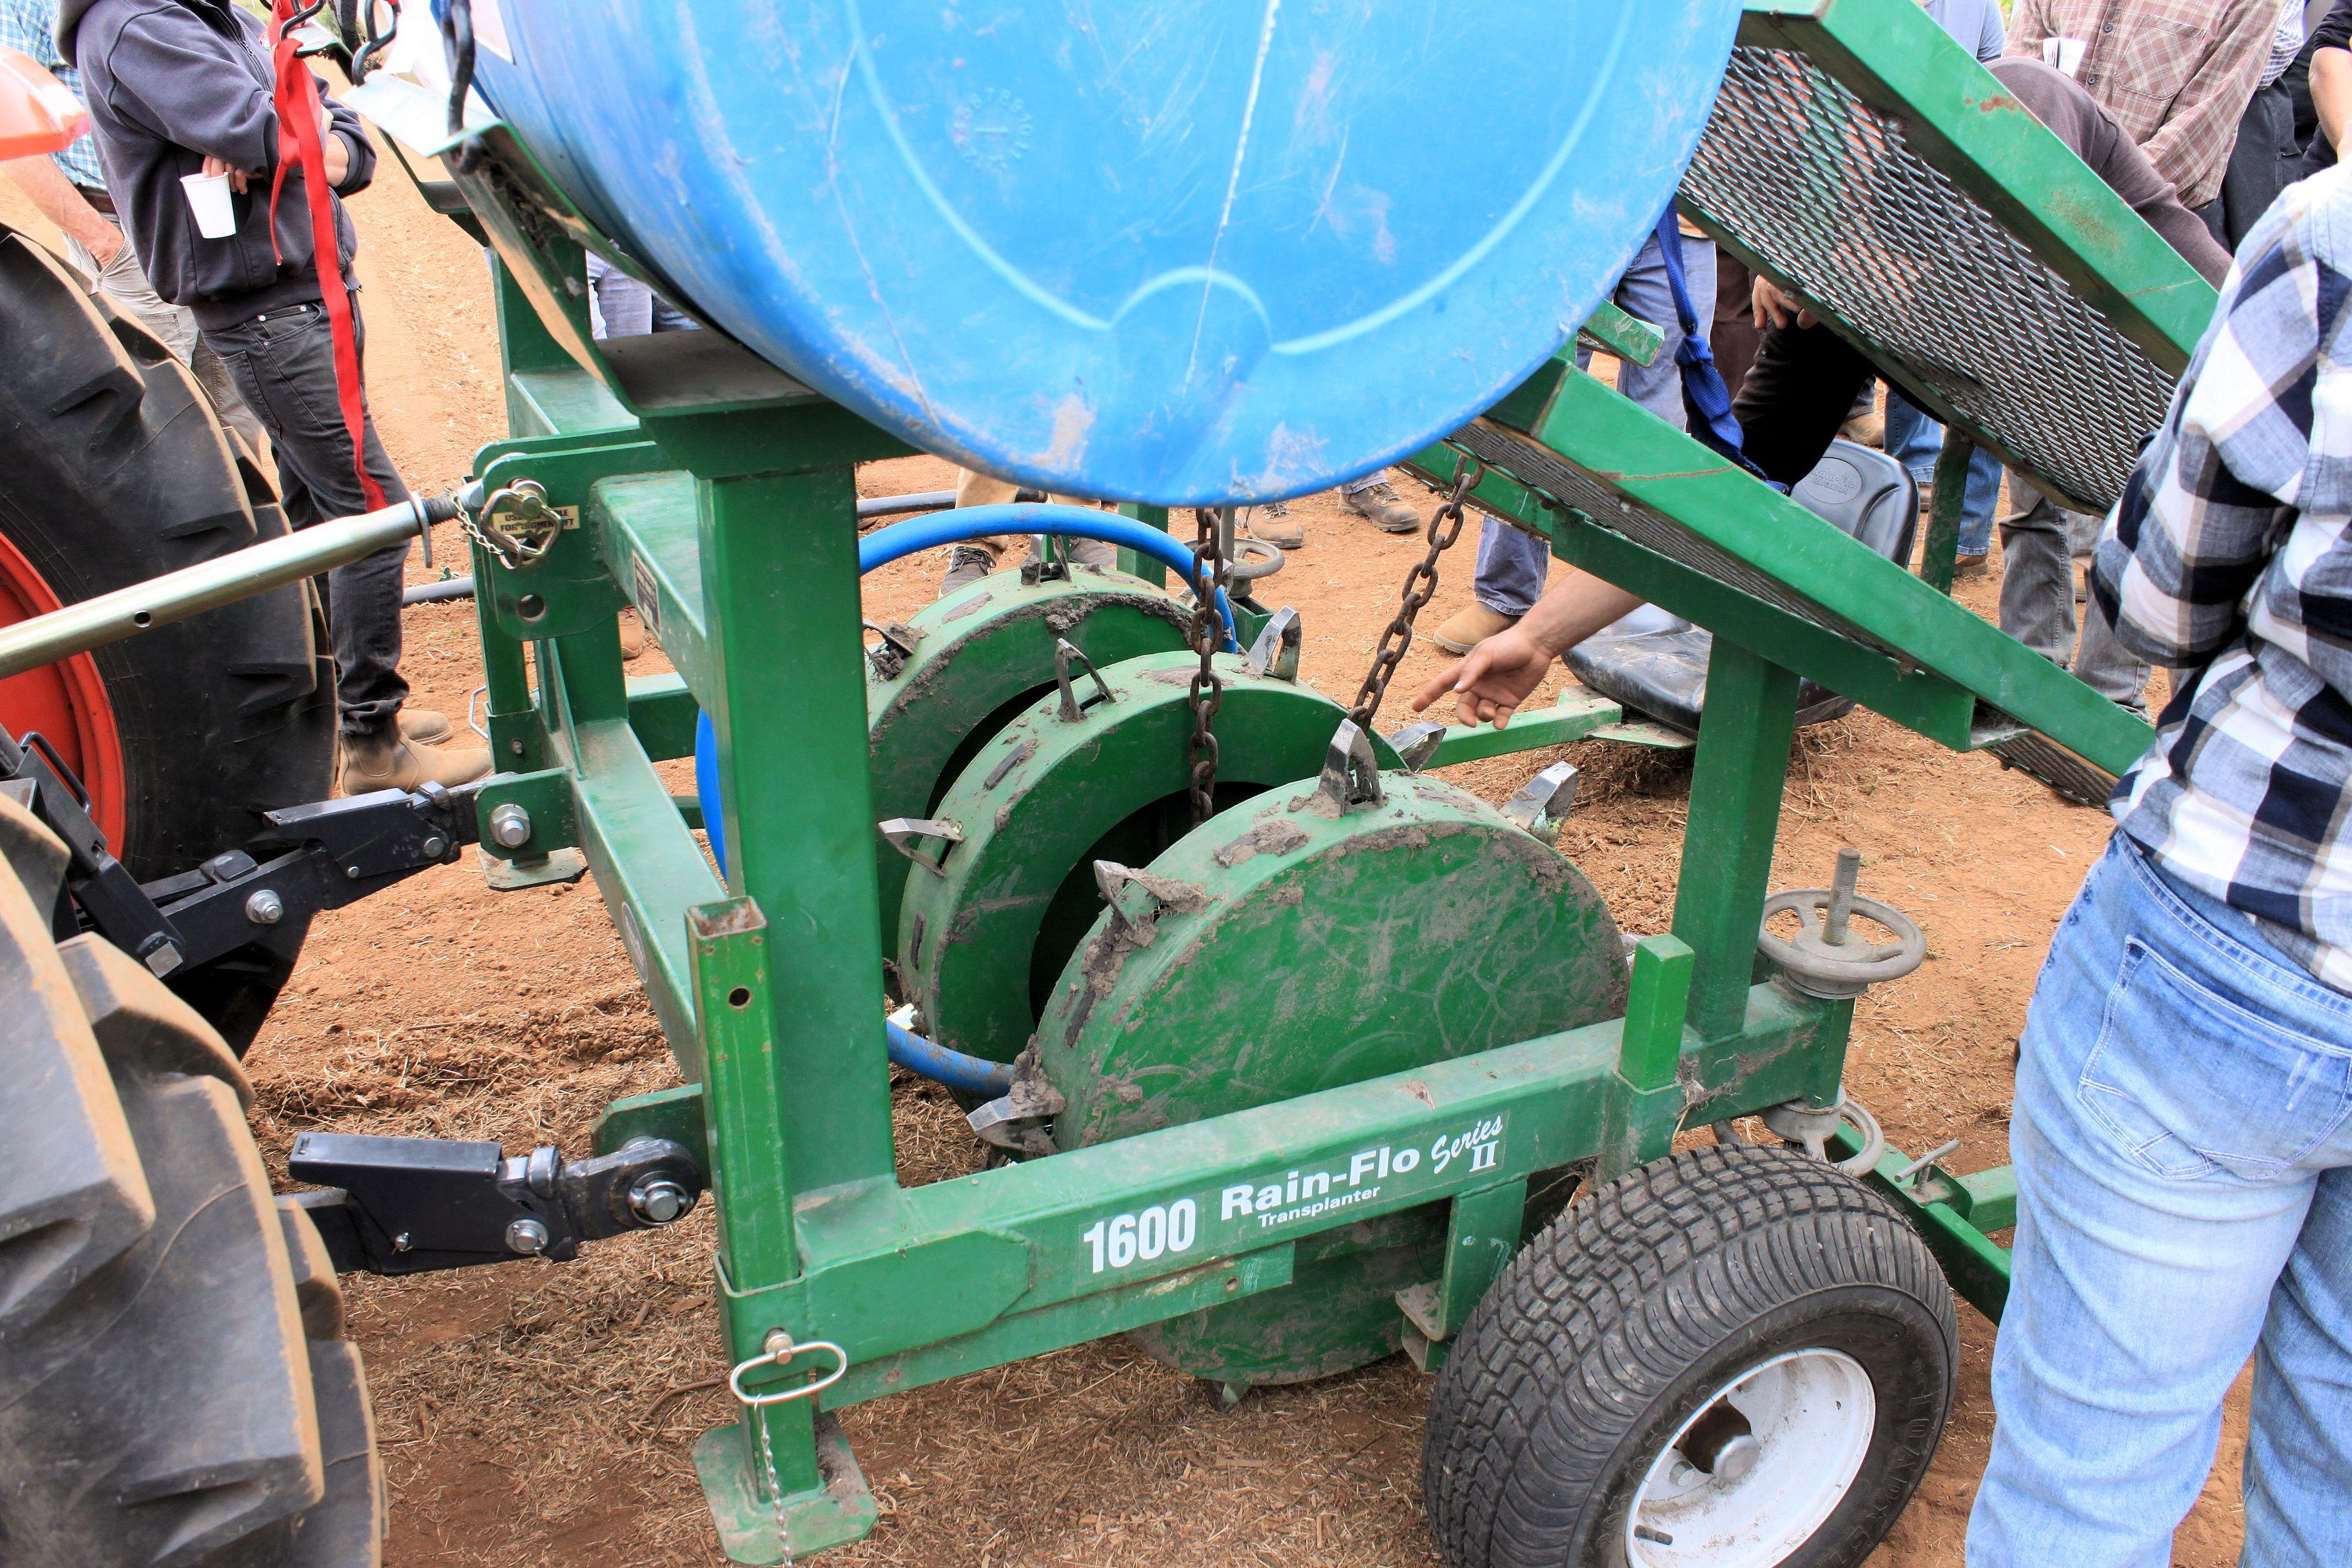 Mechanical transplanter that uses water to make holes